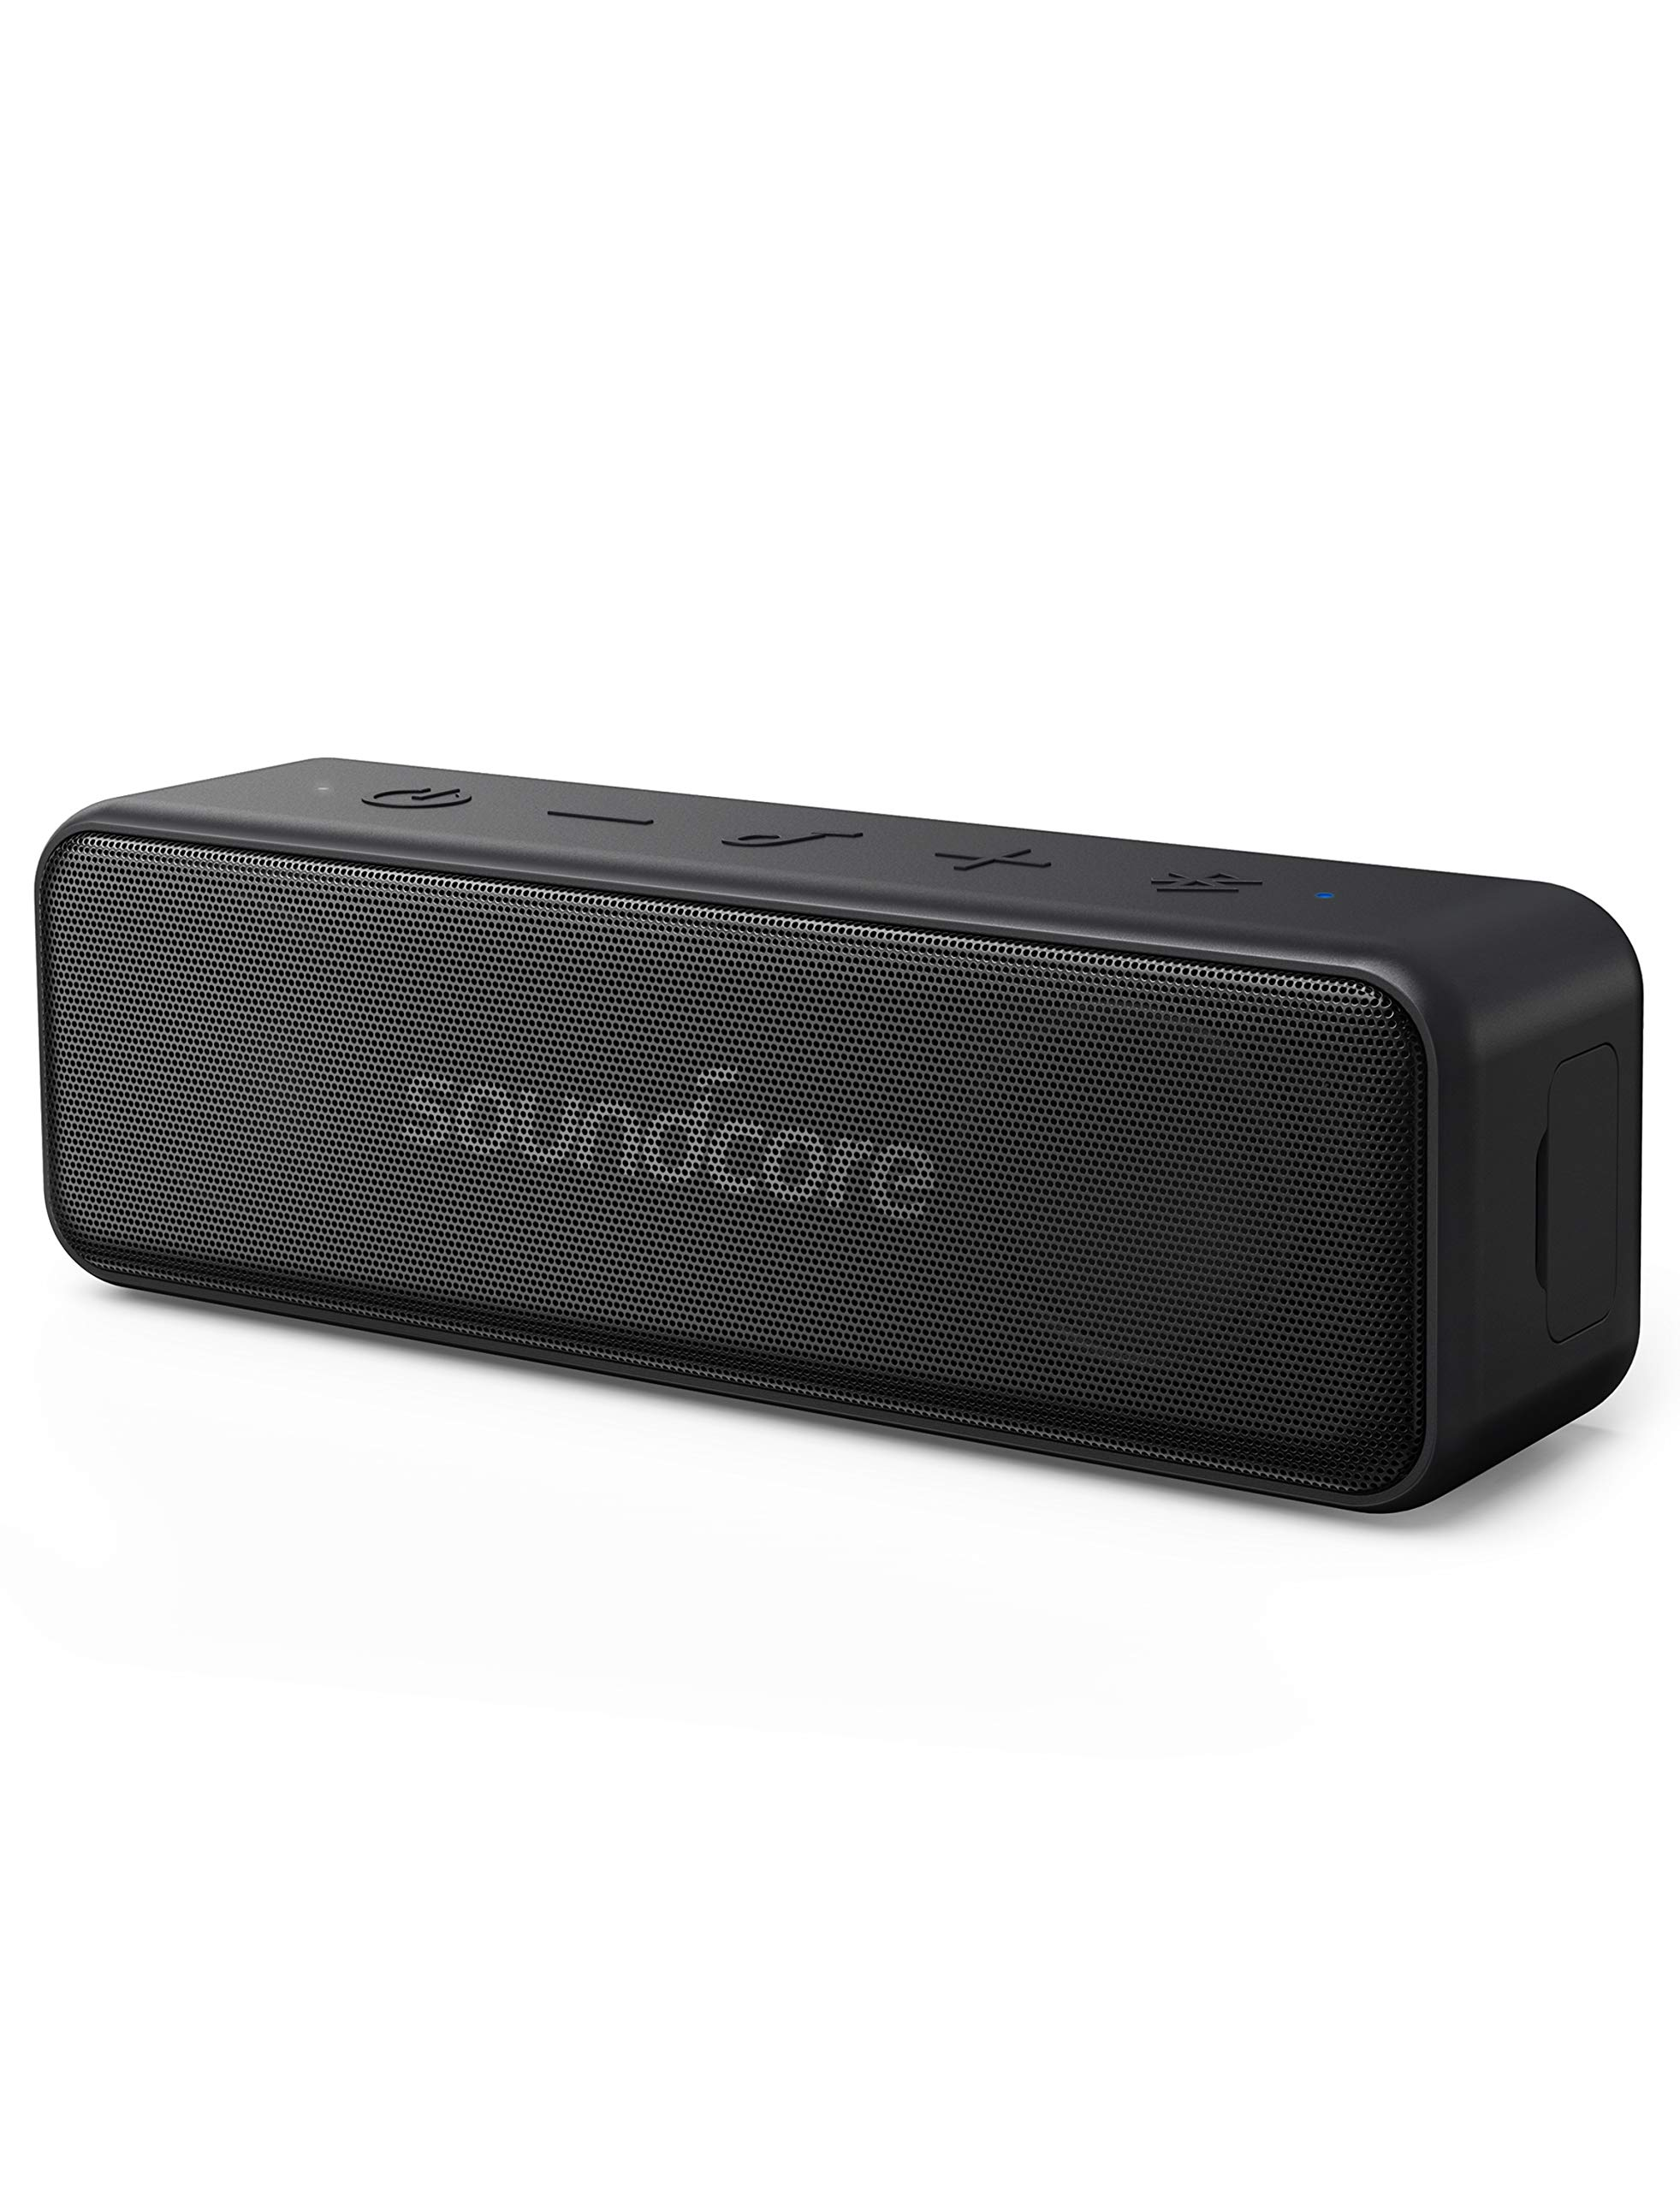 Anker Soundcore Motion B, Portable Bluetooth Speaker, with 12W Louder Stereo Sound, IPX7 Waterproof, and 12+ Hr Longer-Lasting Playtime, Soundcore Speaker Upgraded Edition for Home and Outdoors by Anker